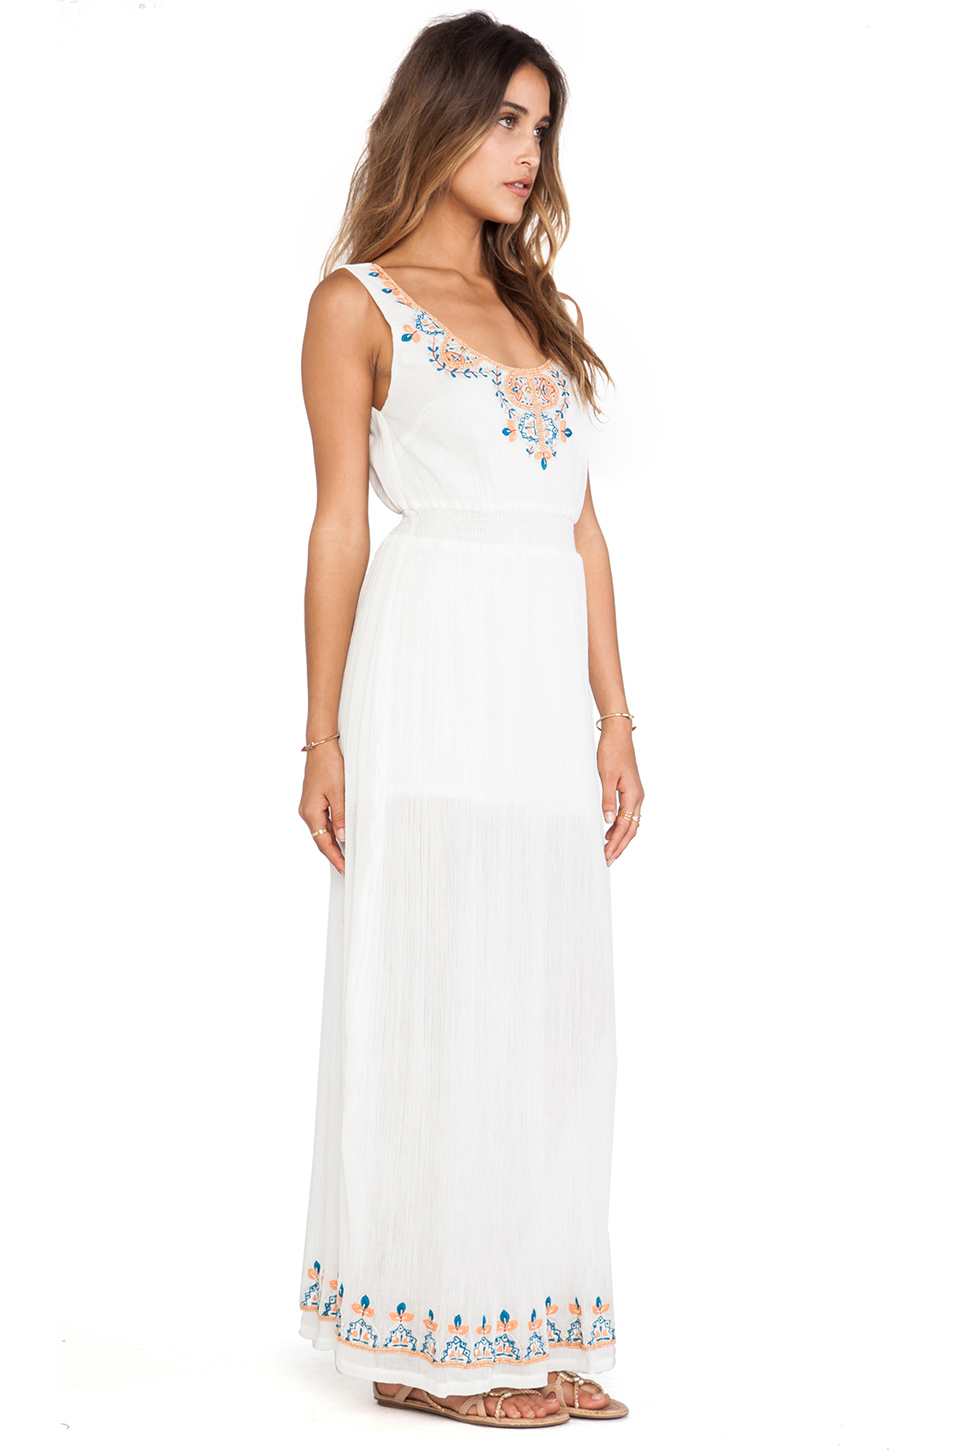 Lightweight and romantic with pretty beaded details, this dress is effortlessly elegant and doesn't need any added accessories.